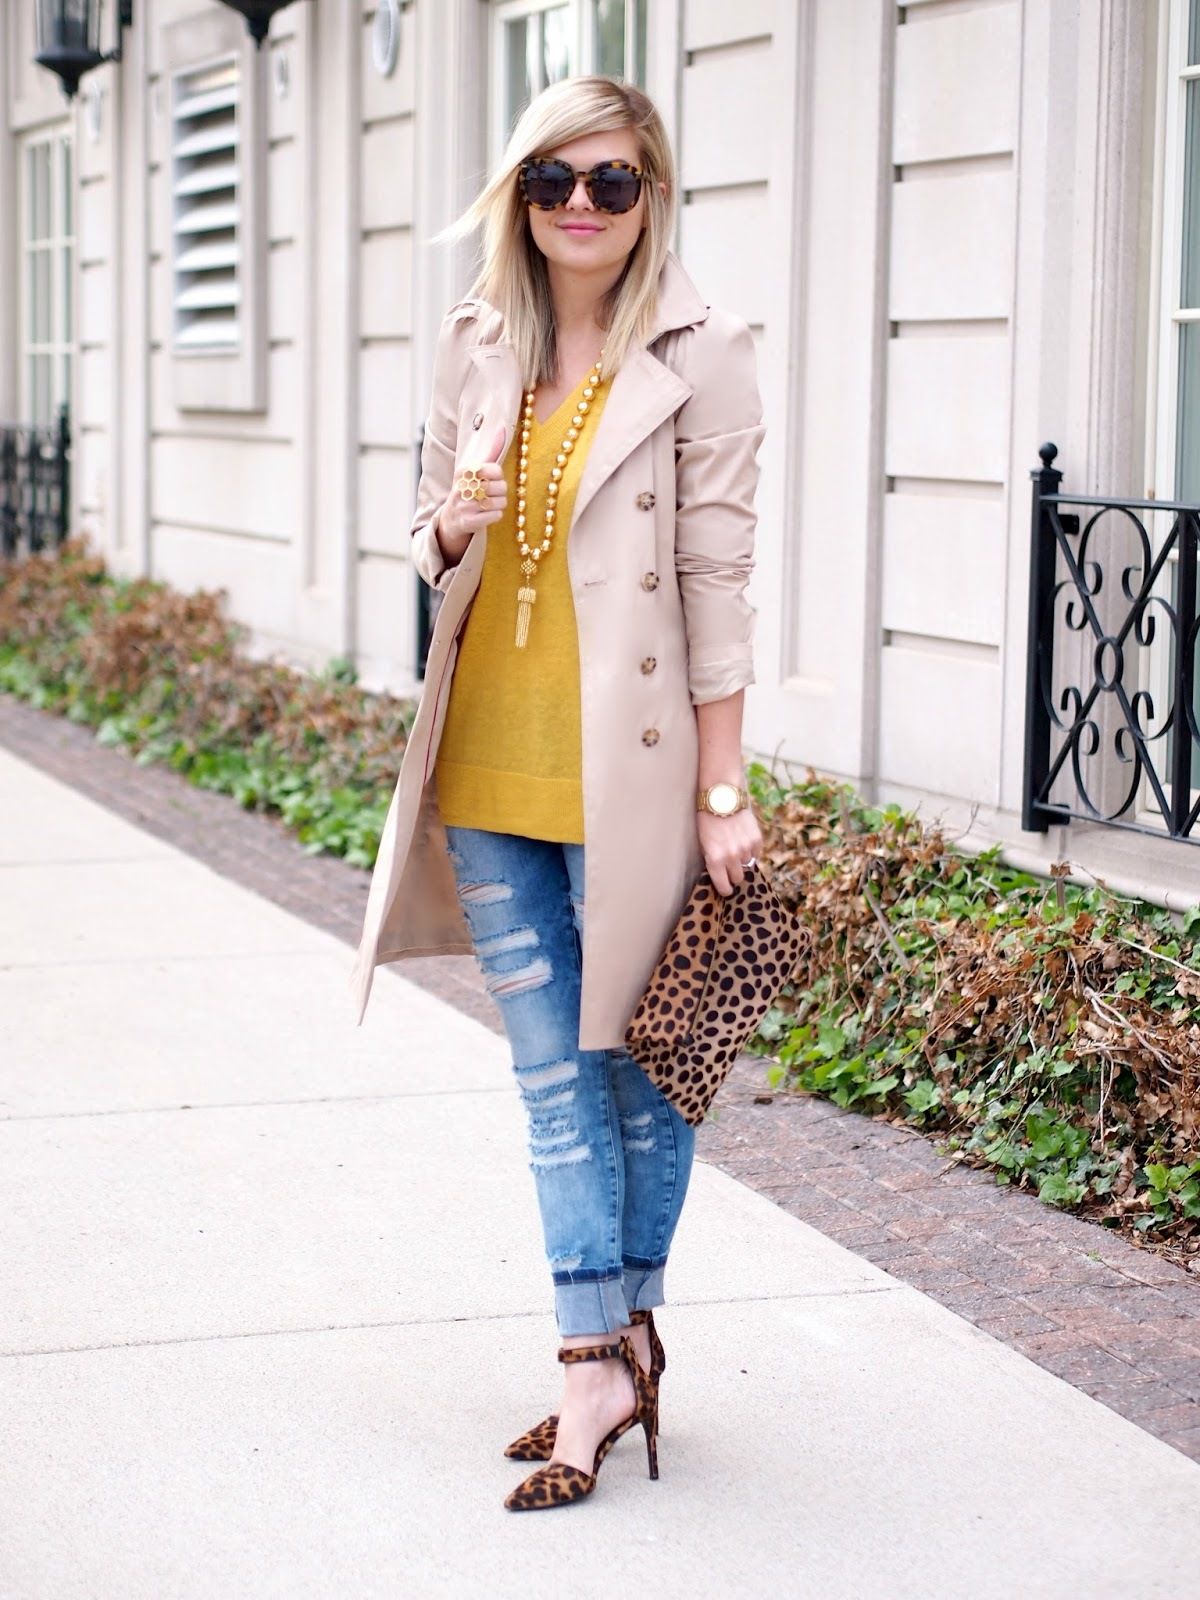 Street style tip of the day: Chambray tank